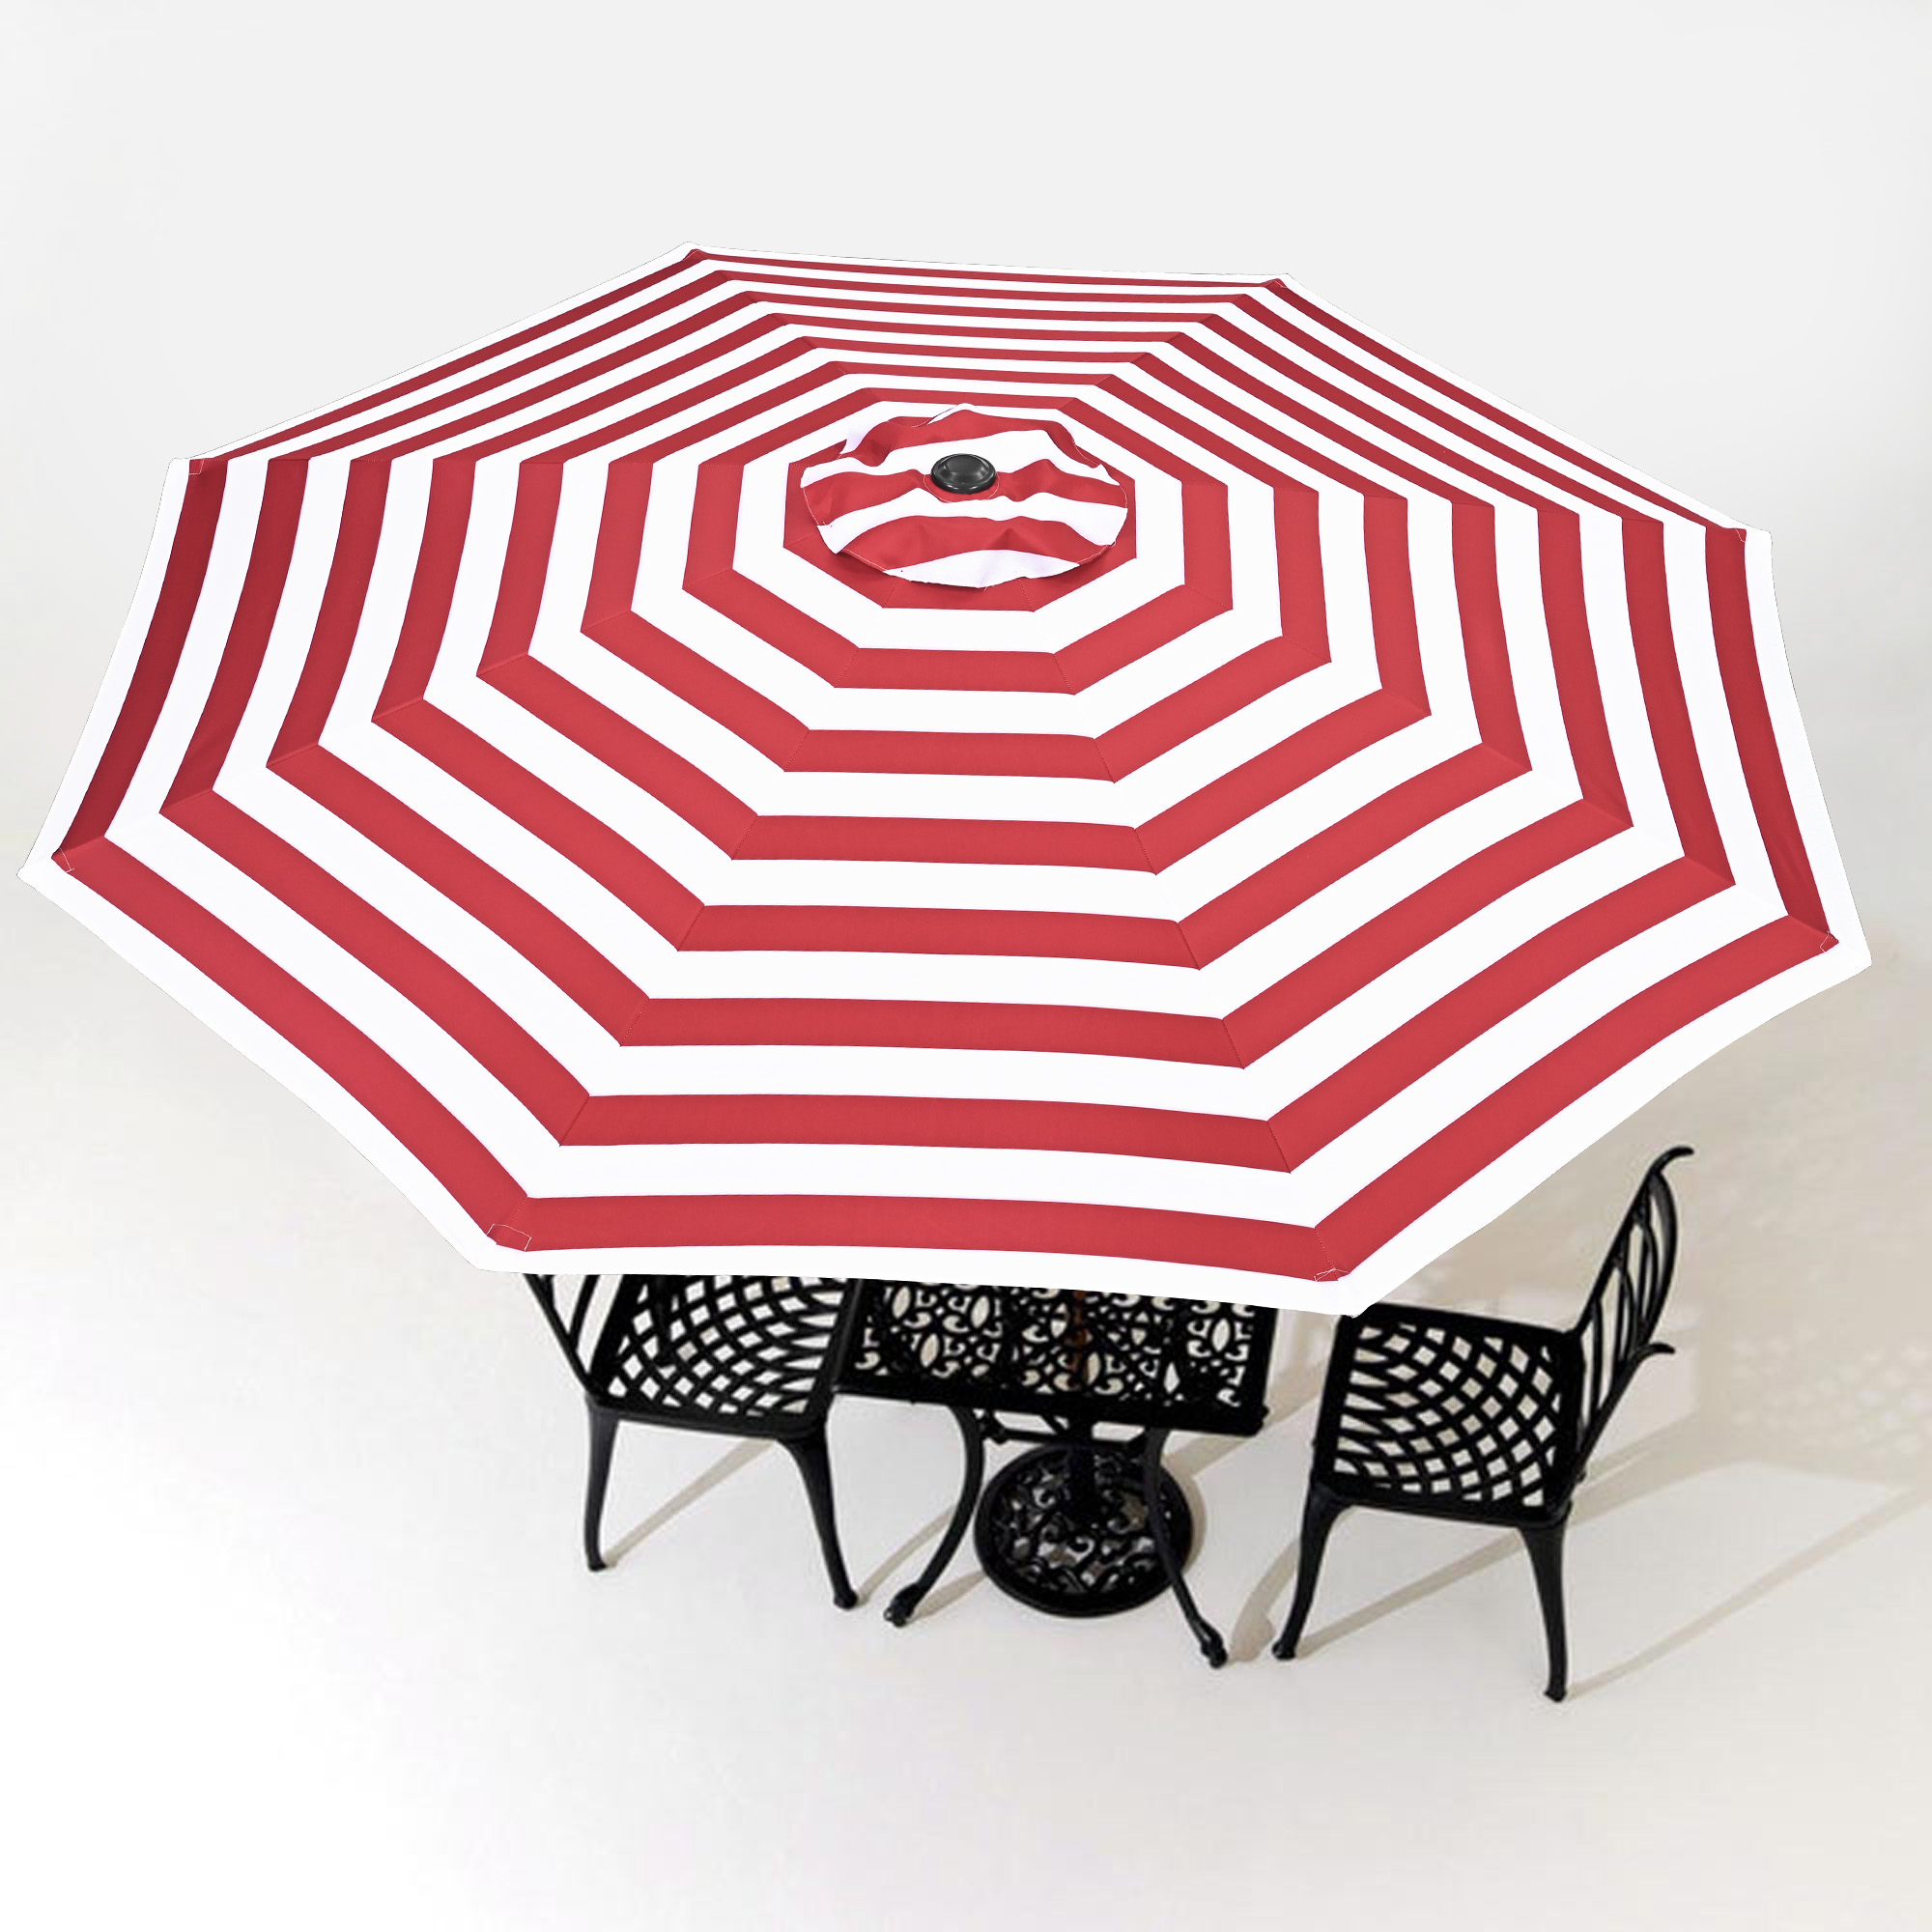 thumbnail 516 - 8'/9'/10'/13' Umbrella Replacement Canopy 8 Rib Outdoor Patio Top Cover Only Opt